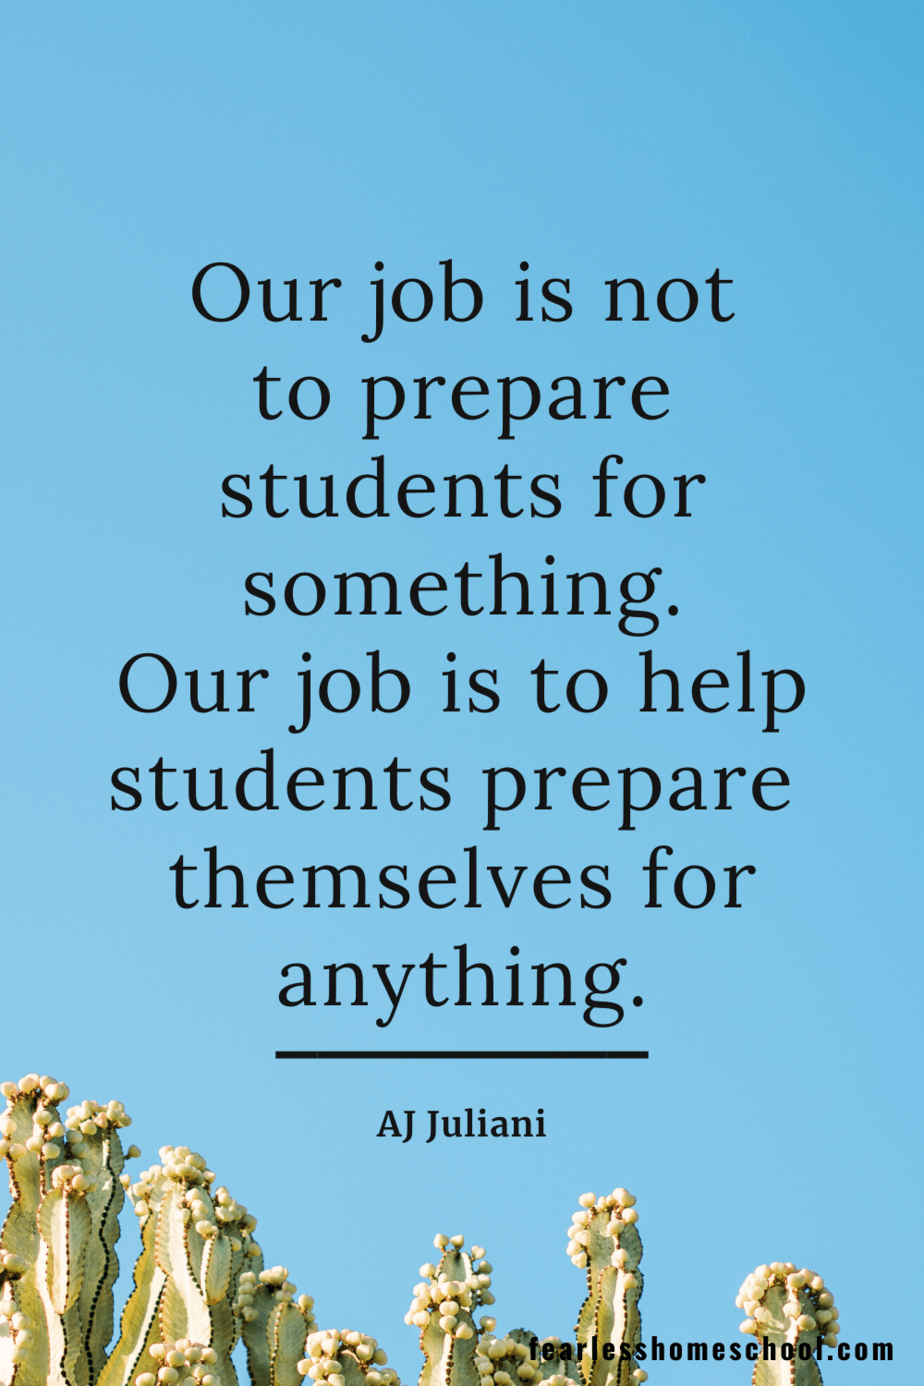 Our job is not to prepare students for something. Our job is to help students prepare themselves for anything. AJ Juliani homeschooling quote